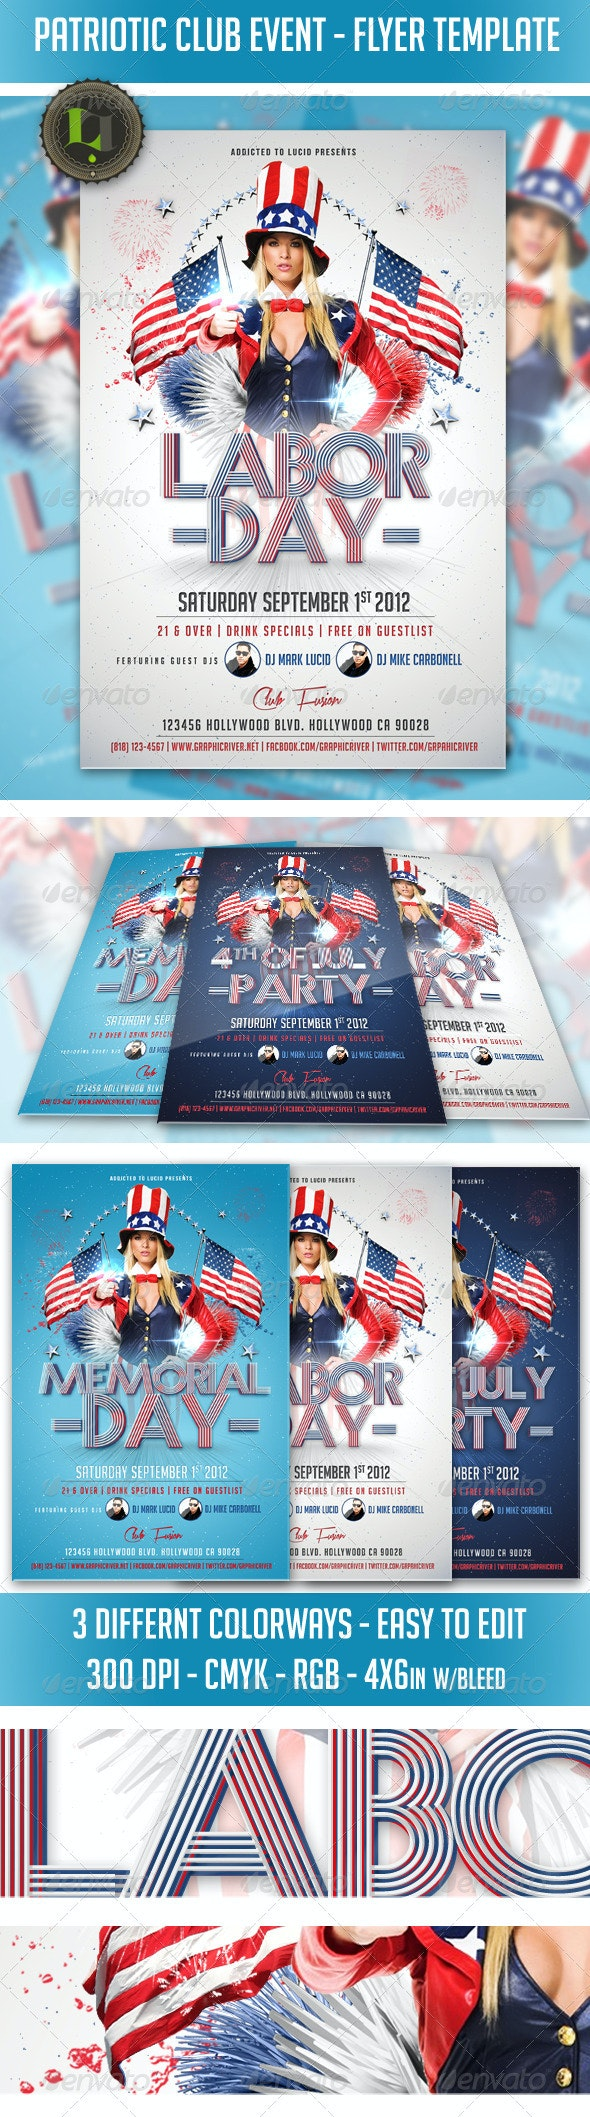 Patriotic Club Event - Flyer Template - Clubs & Parties Events